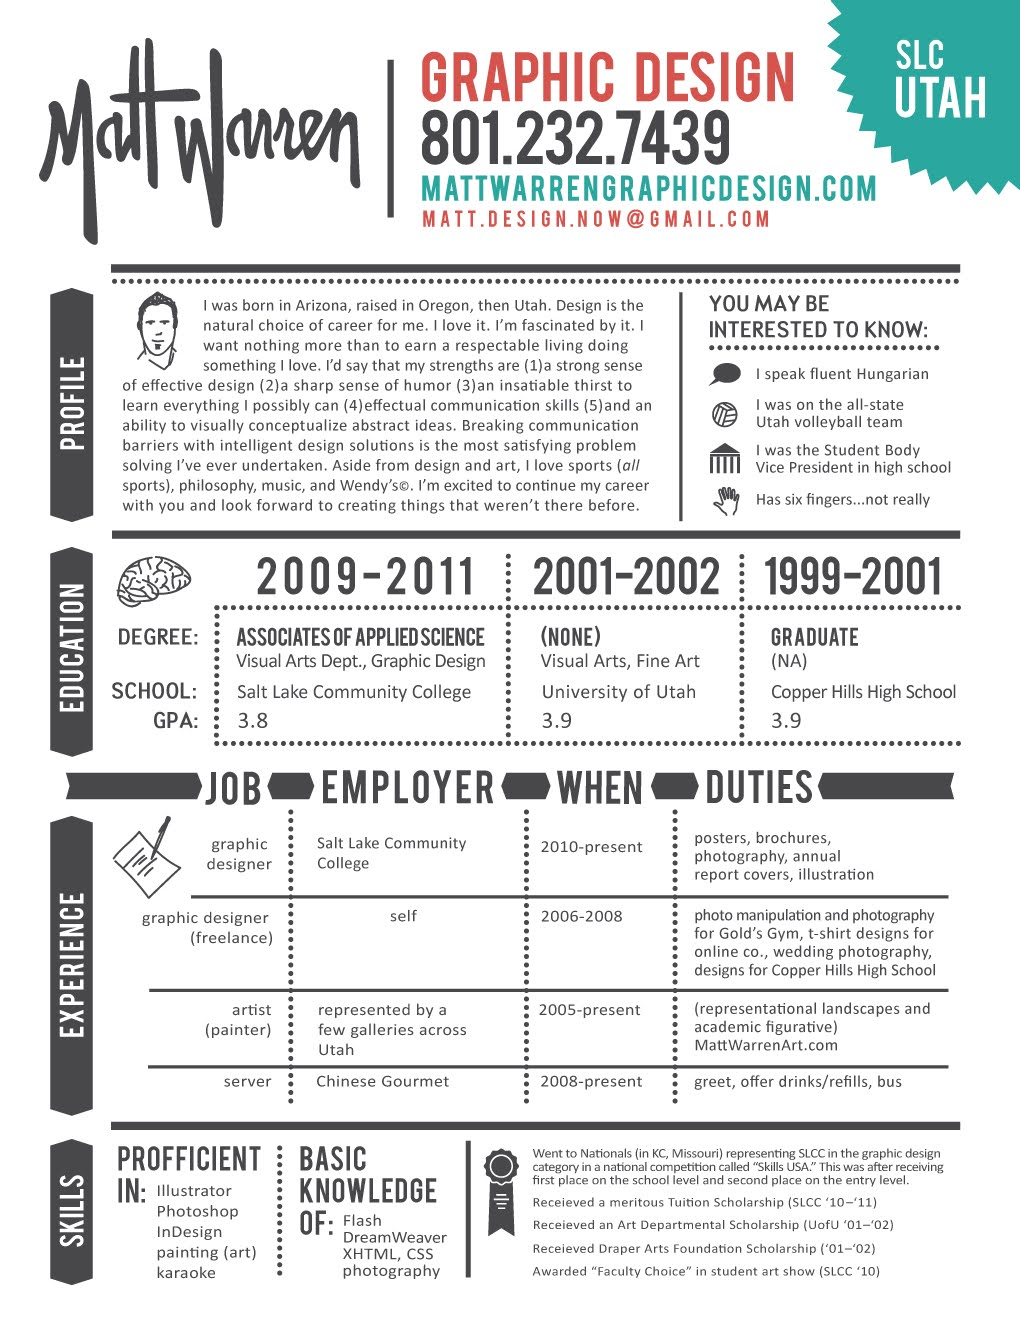 pixel dust graphic design blog  graphic design resume design 2013